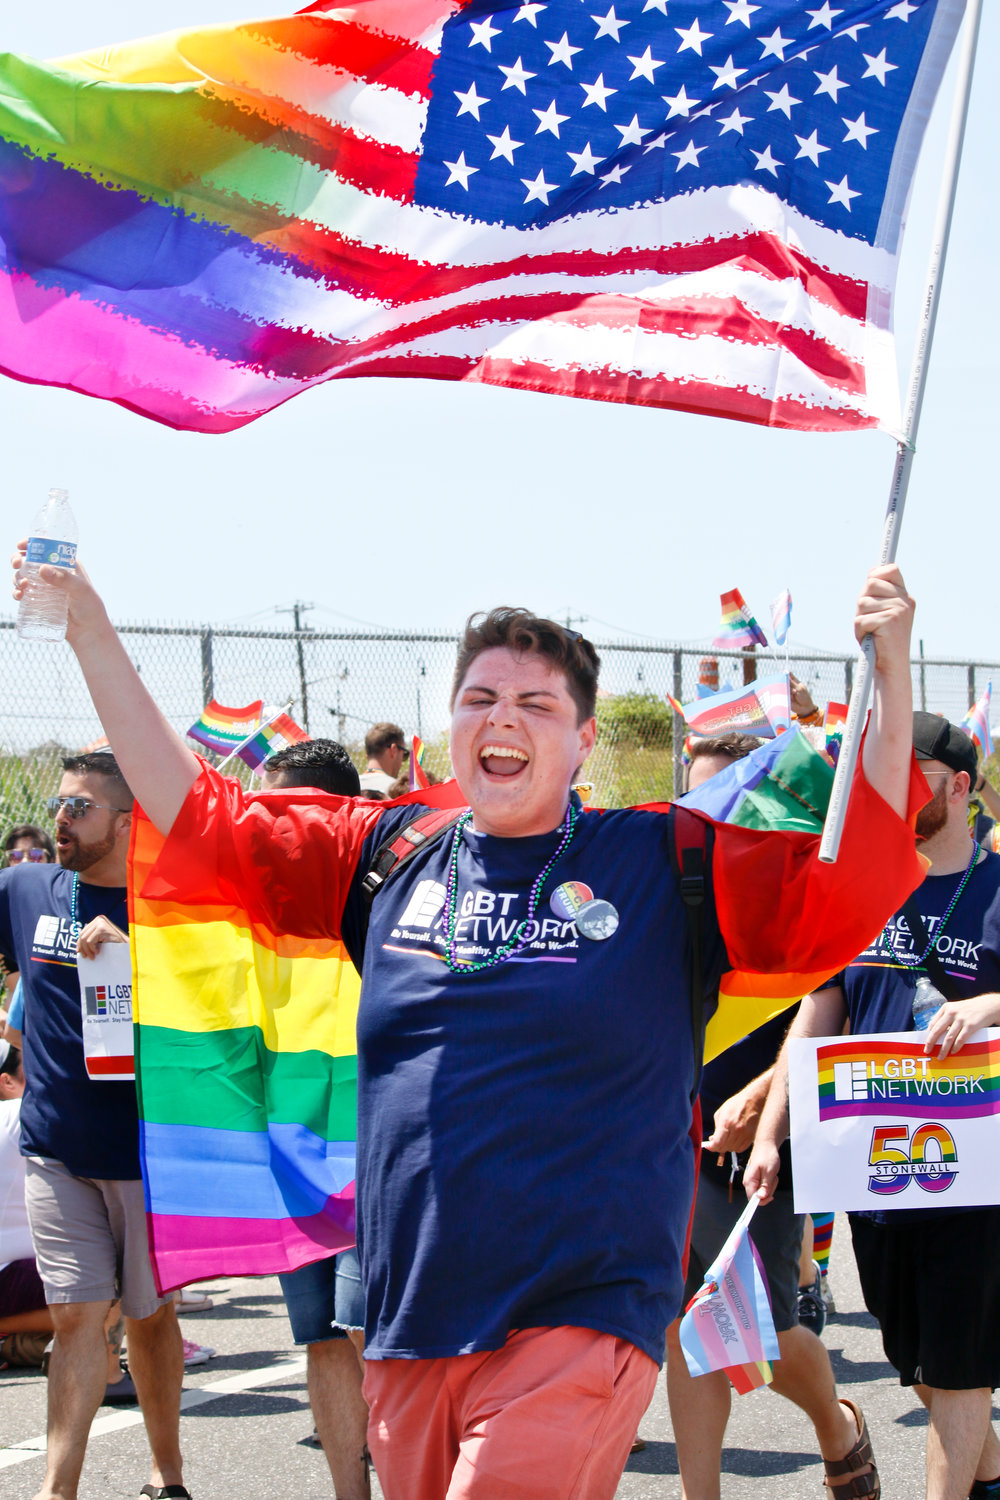 Long Beach High School student Joseph Carrasco, who will be starting his senior year in the fall, cheered with his fellow classmates during the annual Pride on the beach Parade.